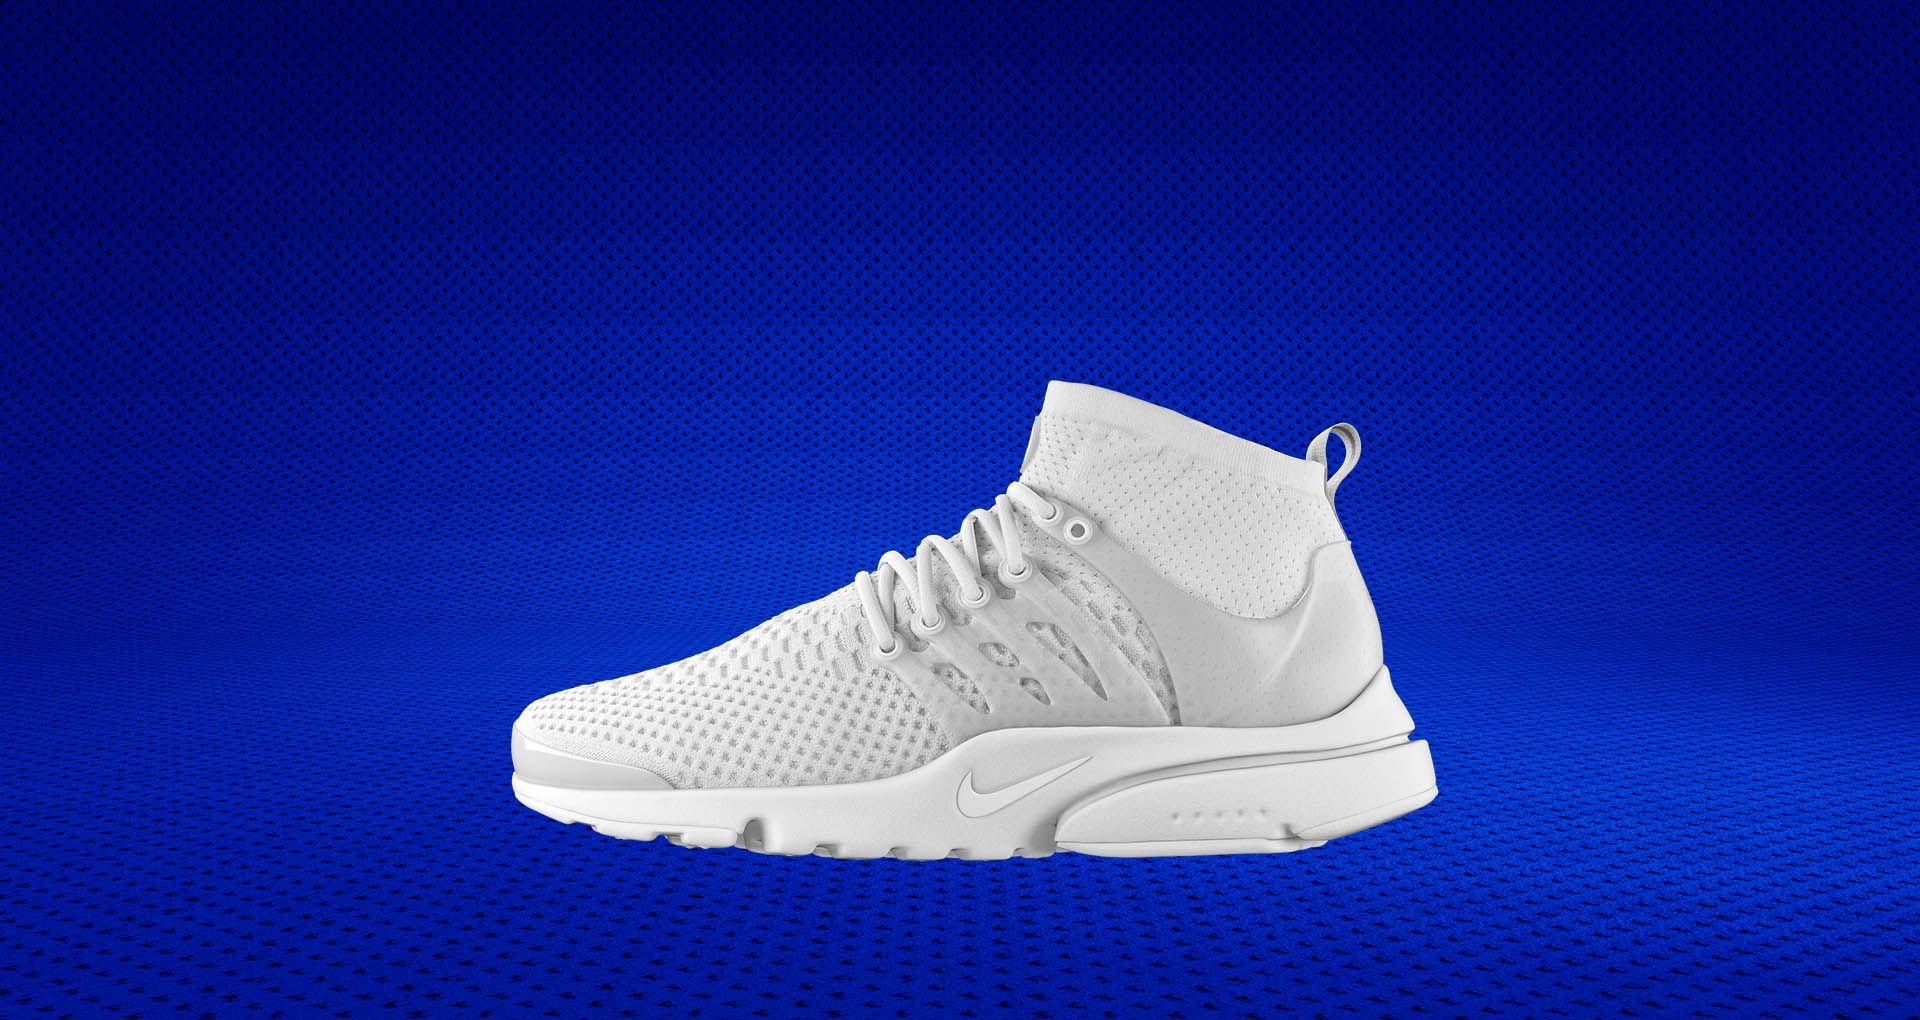 save off 22990 4b24f Nike Air Presto Ultra Flyknit 'Triple White' Release Date ...